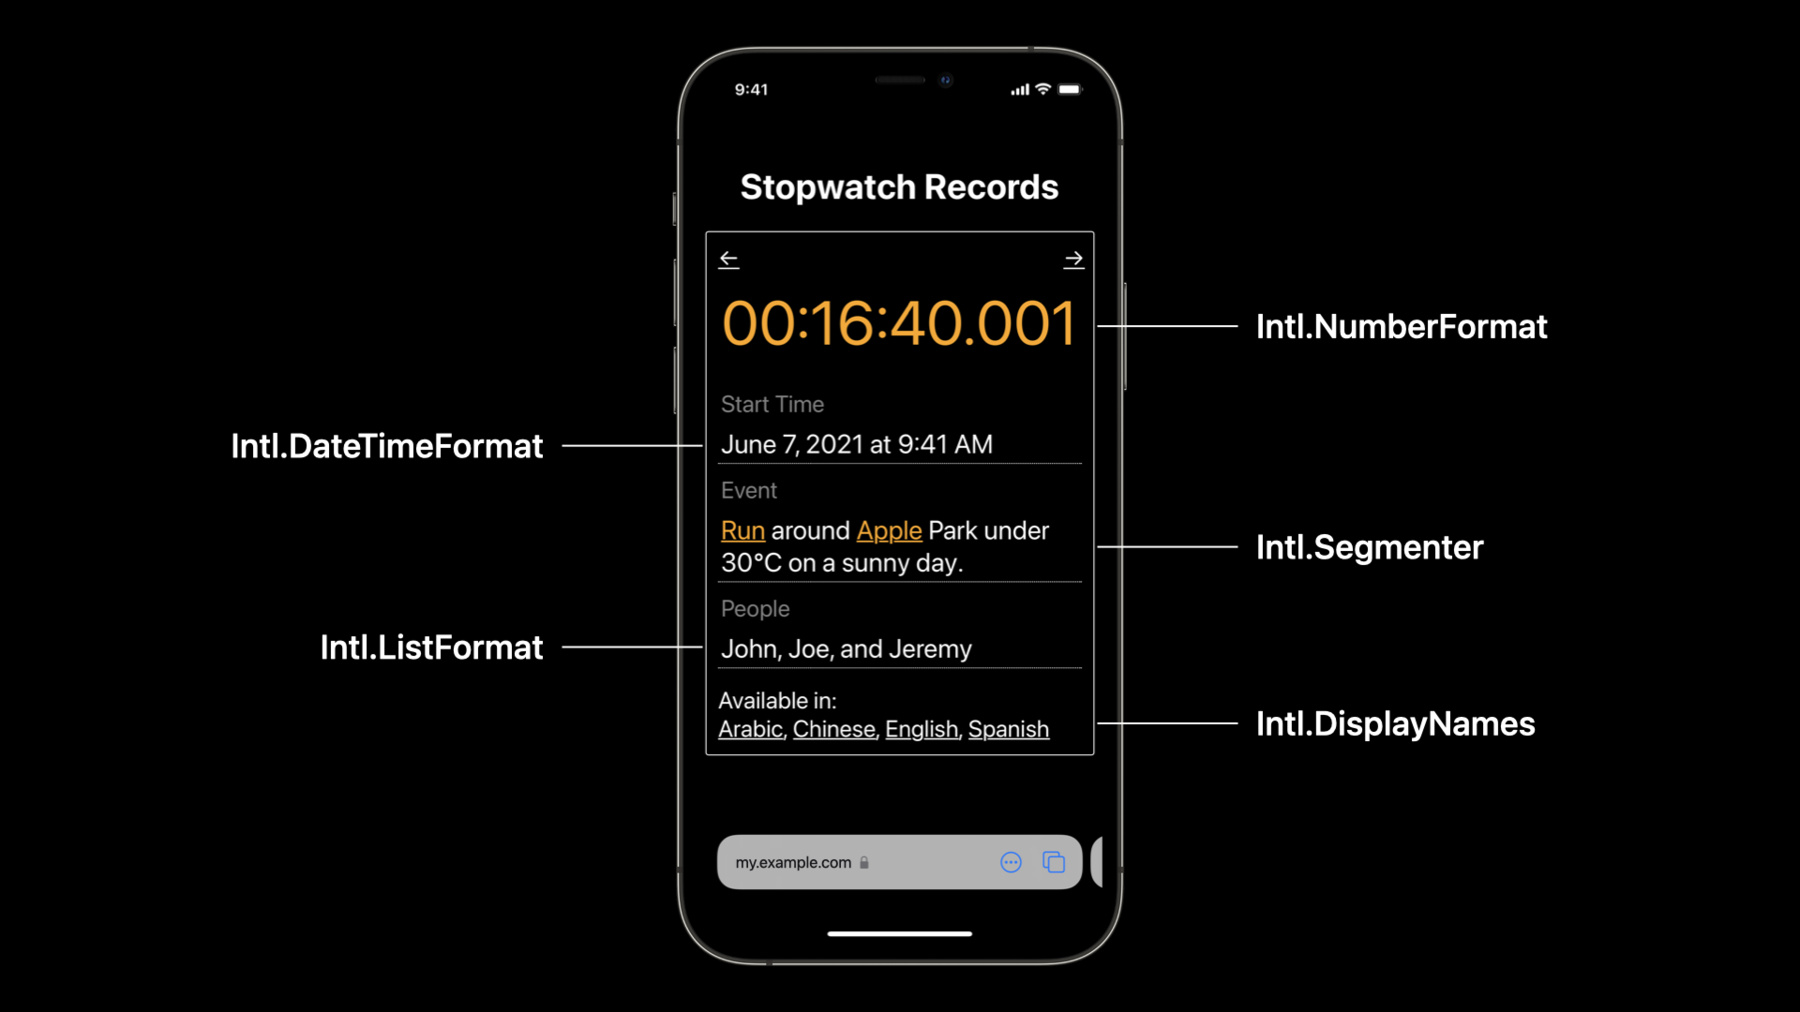 iPhone showing a Stopwatch Records demo using the JavaScript Internationalization API